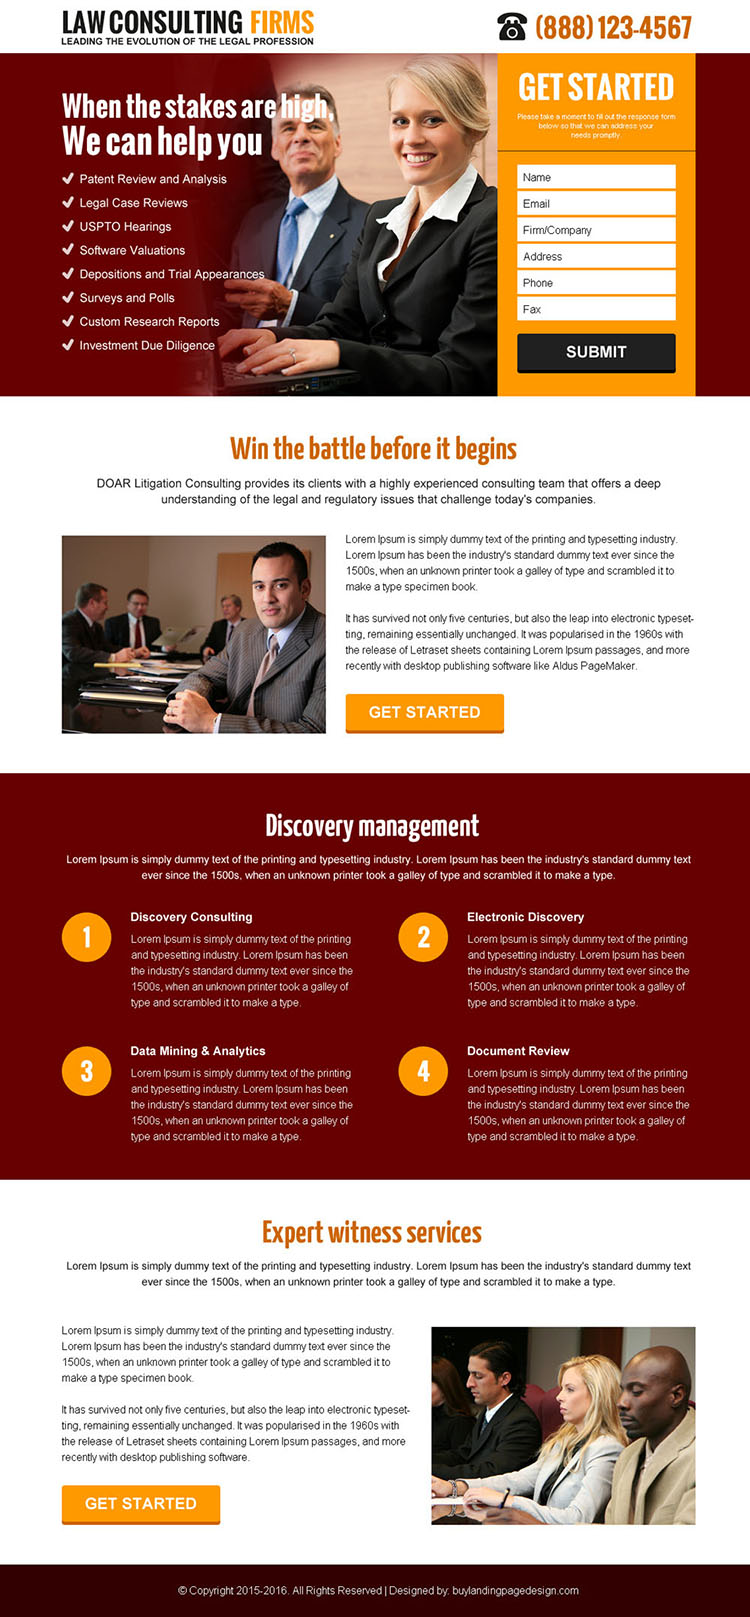 law consulting firms for legal help responsive landing page